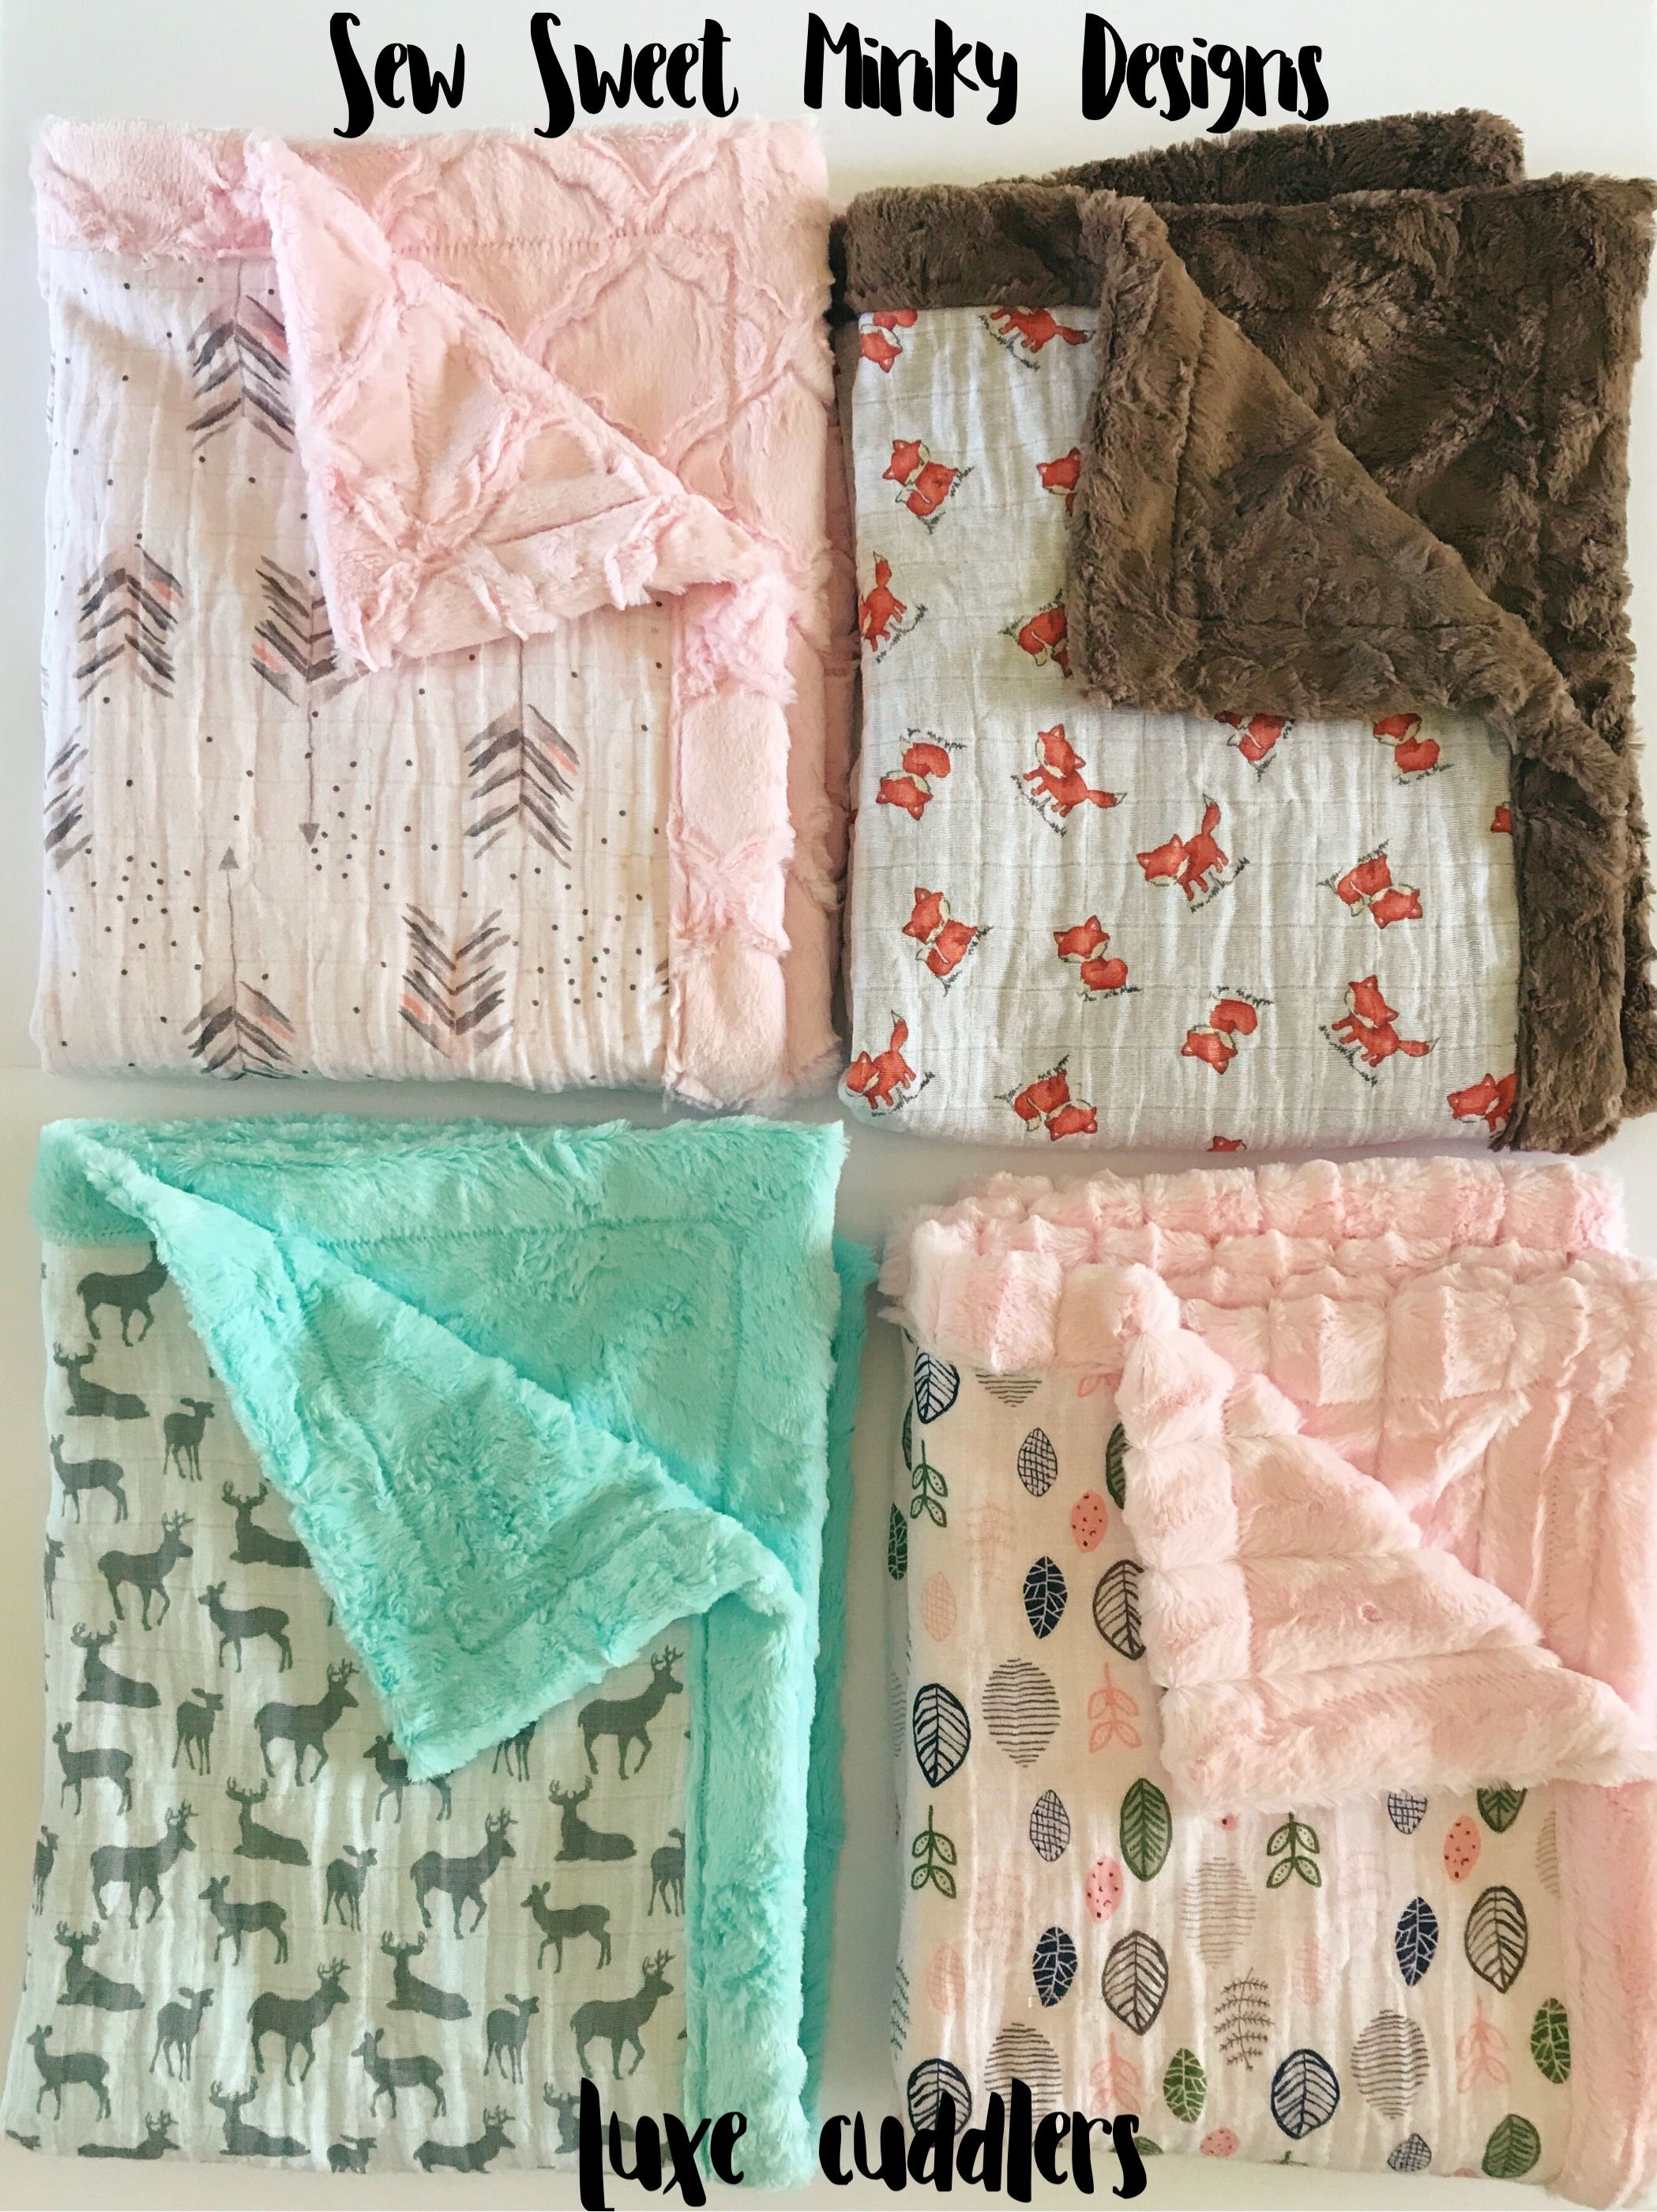 f3847aa11f Luxe cuddler blankets! Muslin front with faux fur Minky backing. Baby  blanket